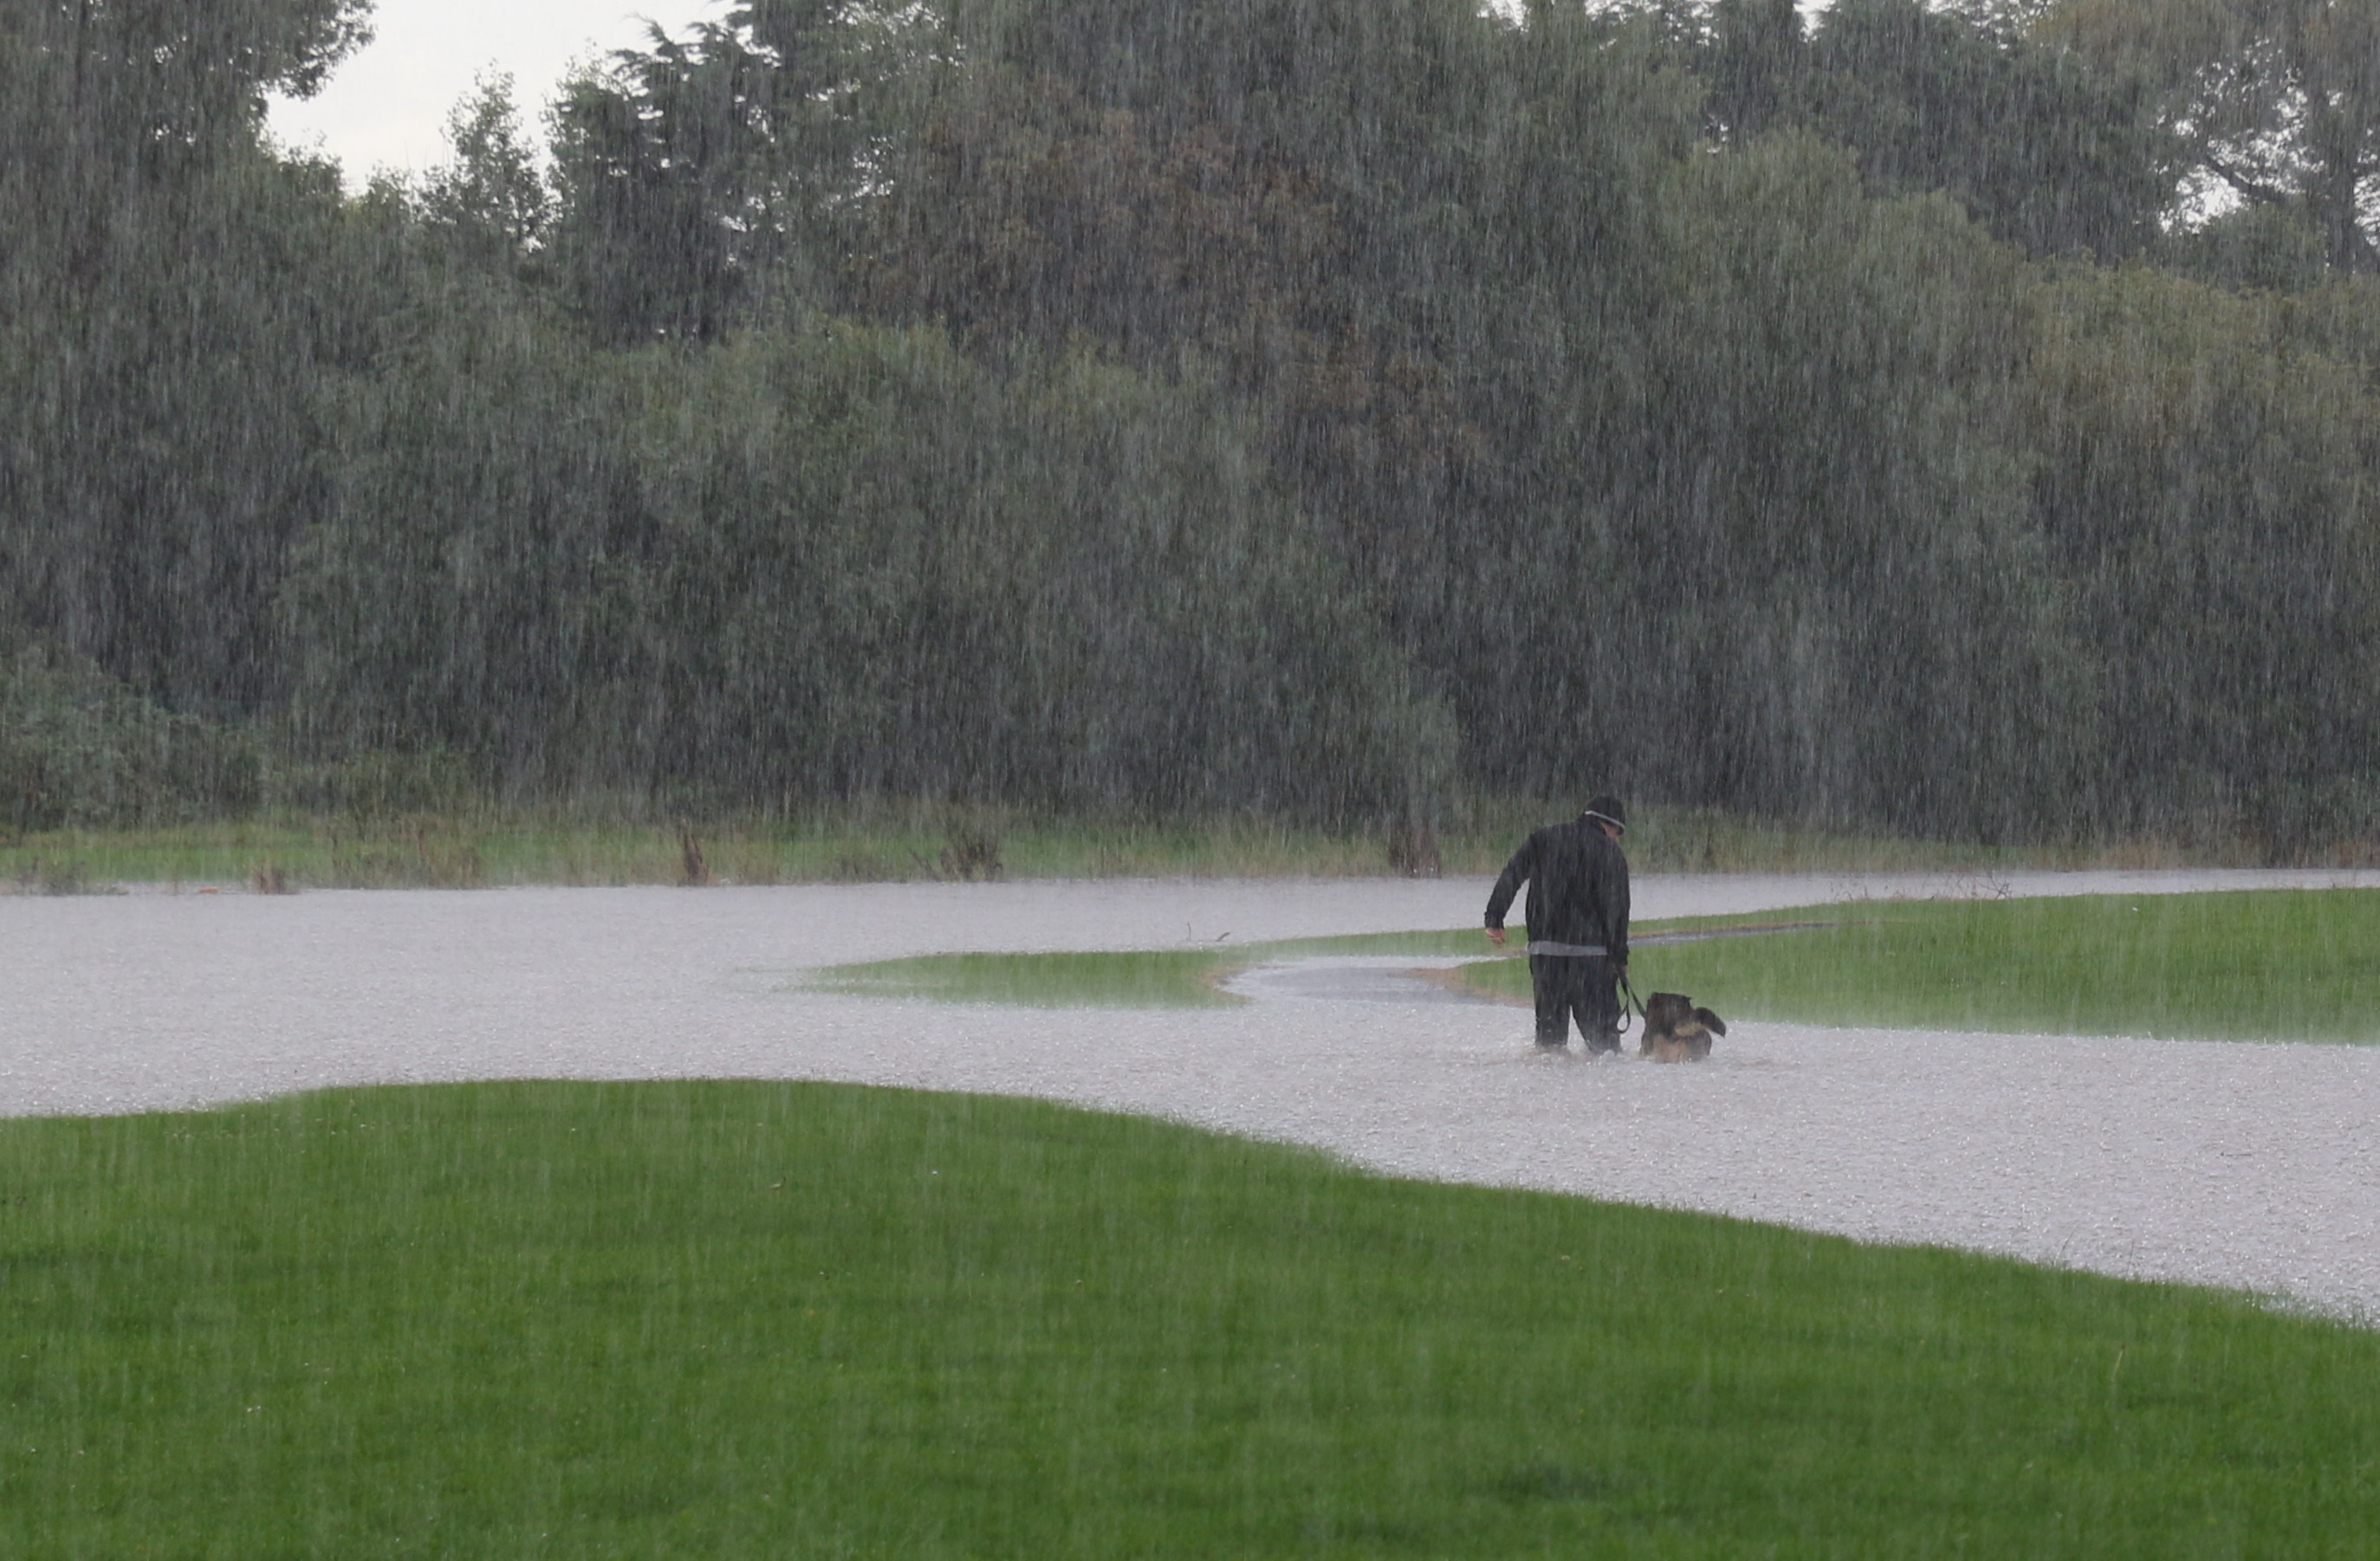 Moreton Floods - Walkies, there's dedication for you